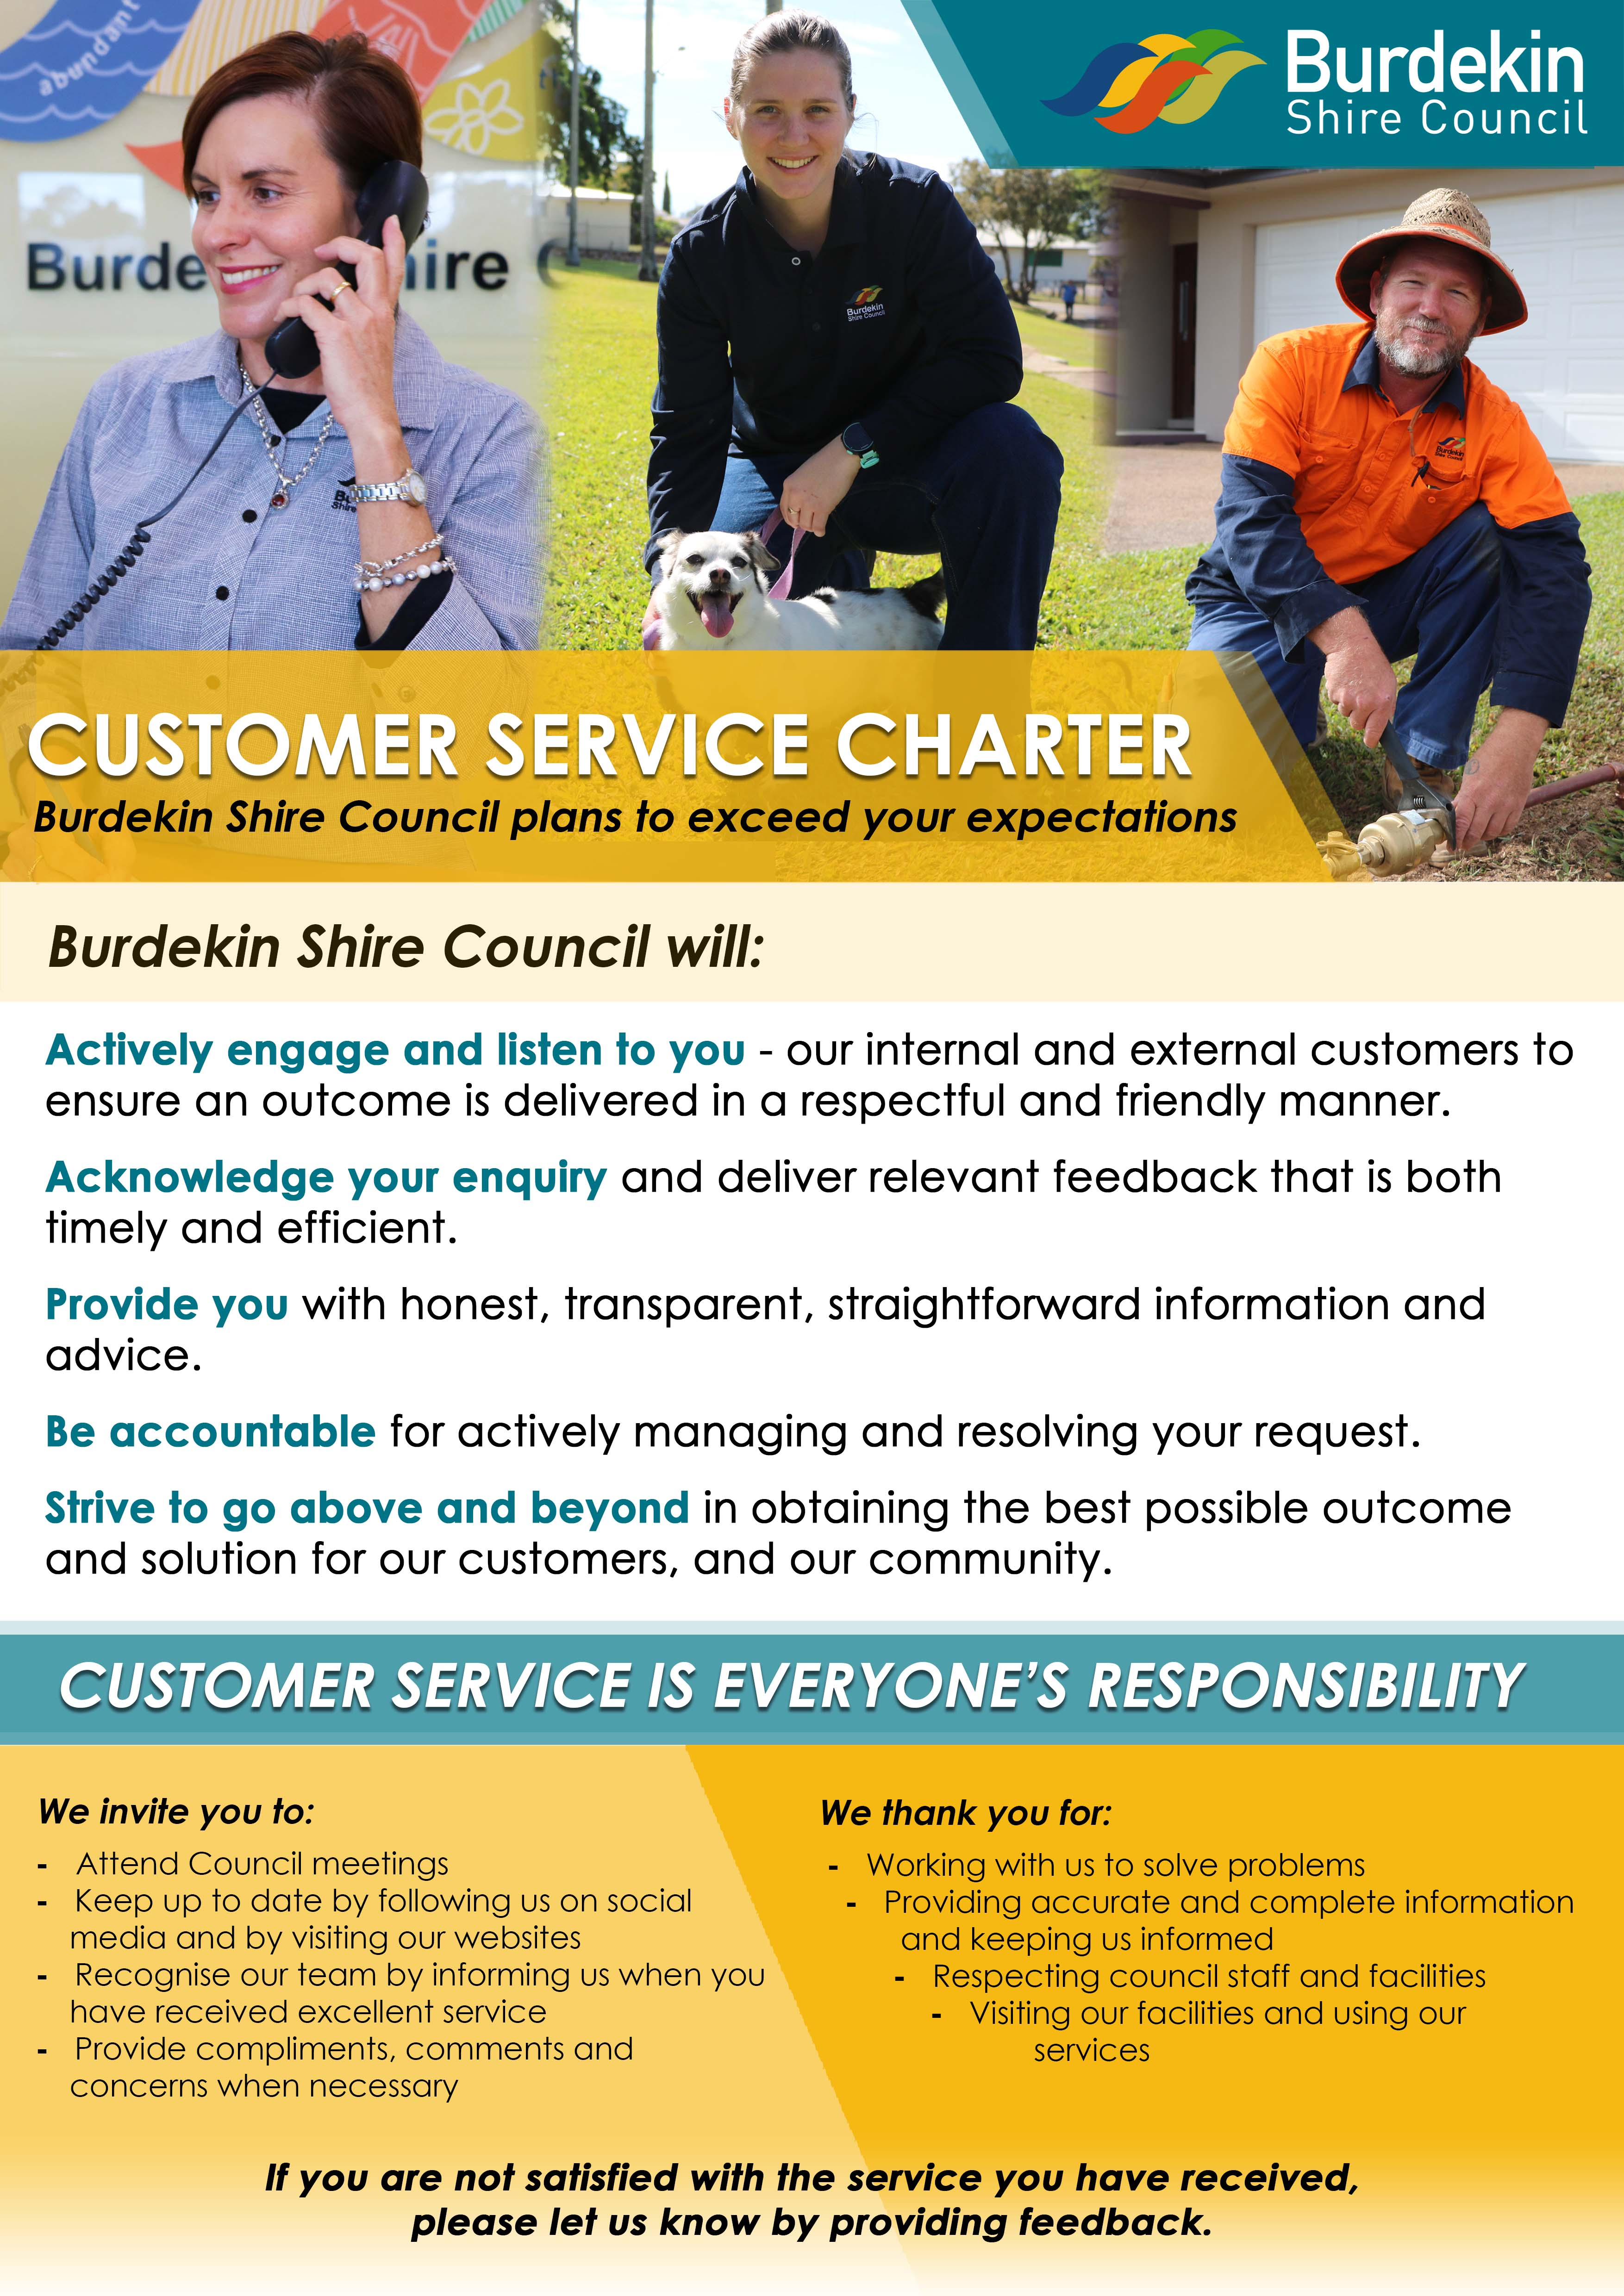 Burdekin Shire Council Customer Service Charter